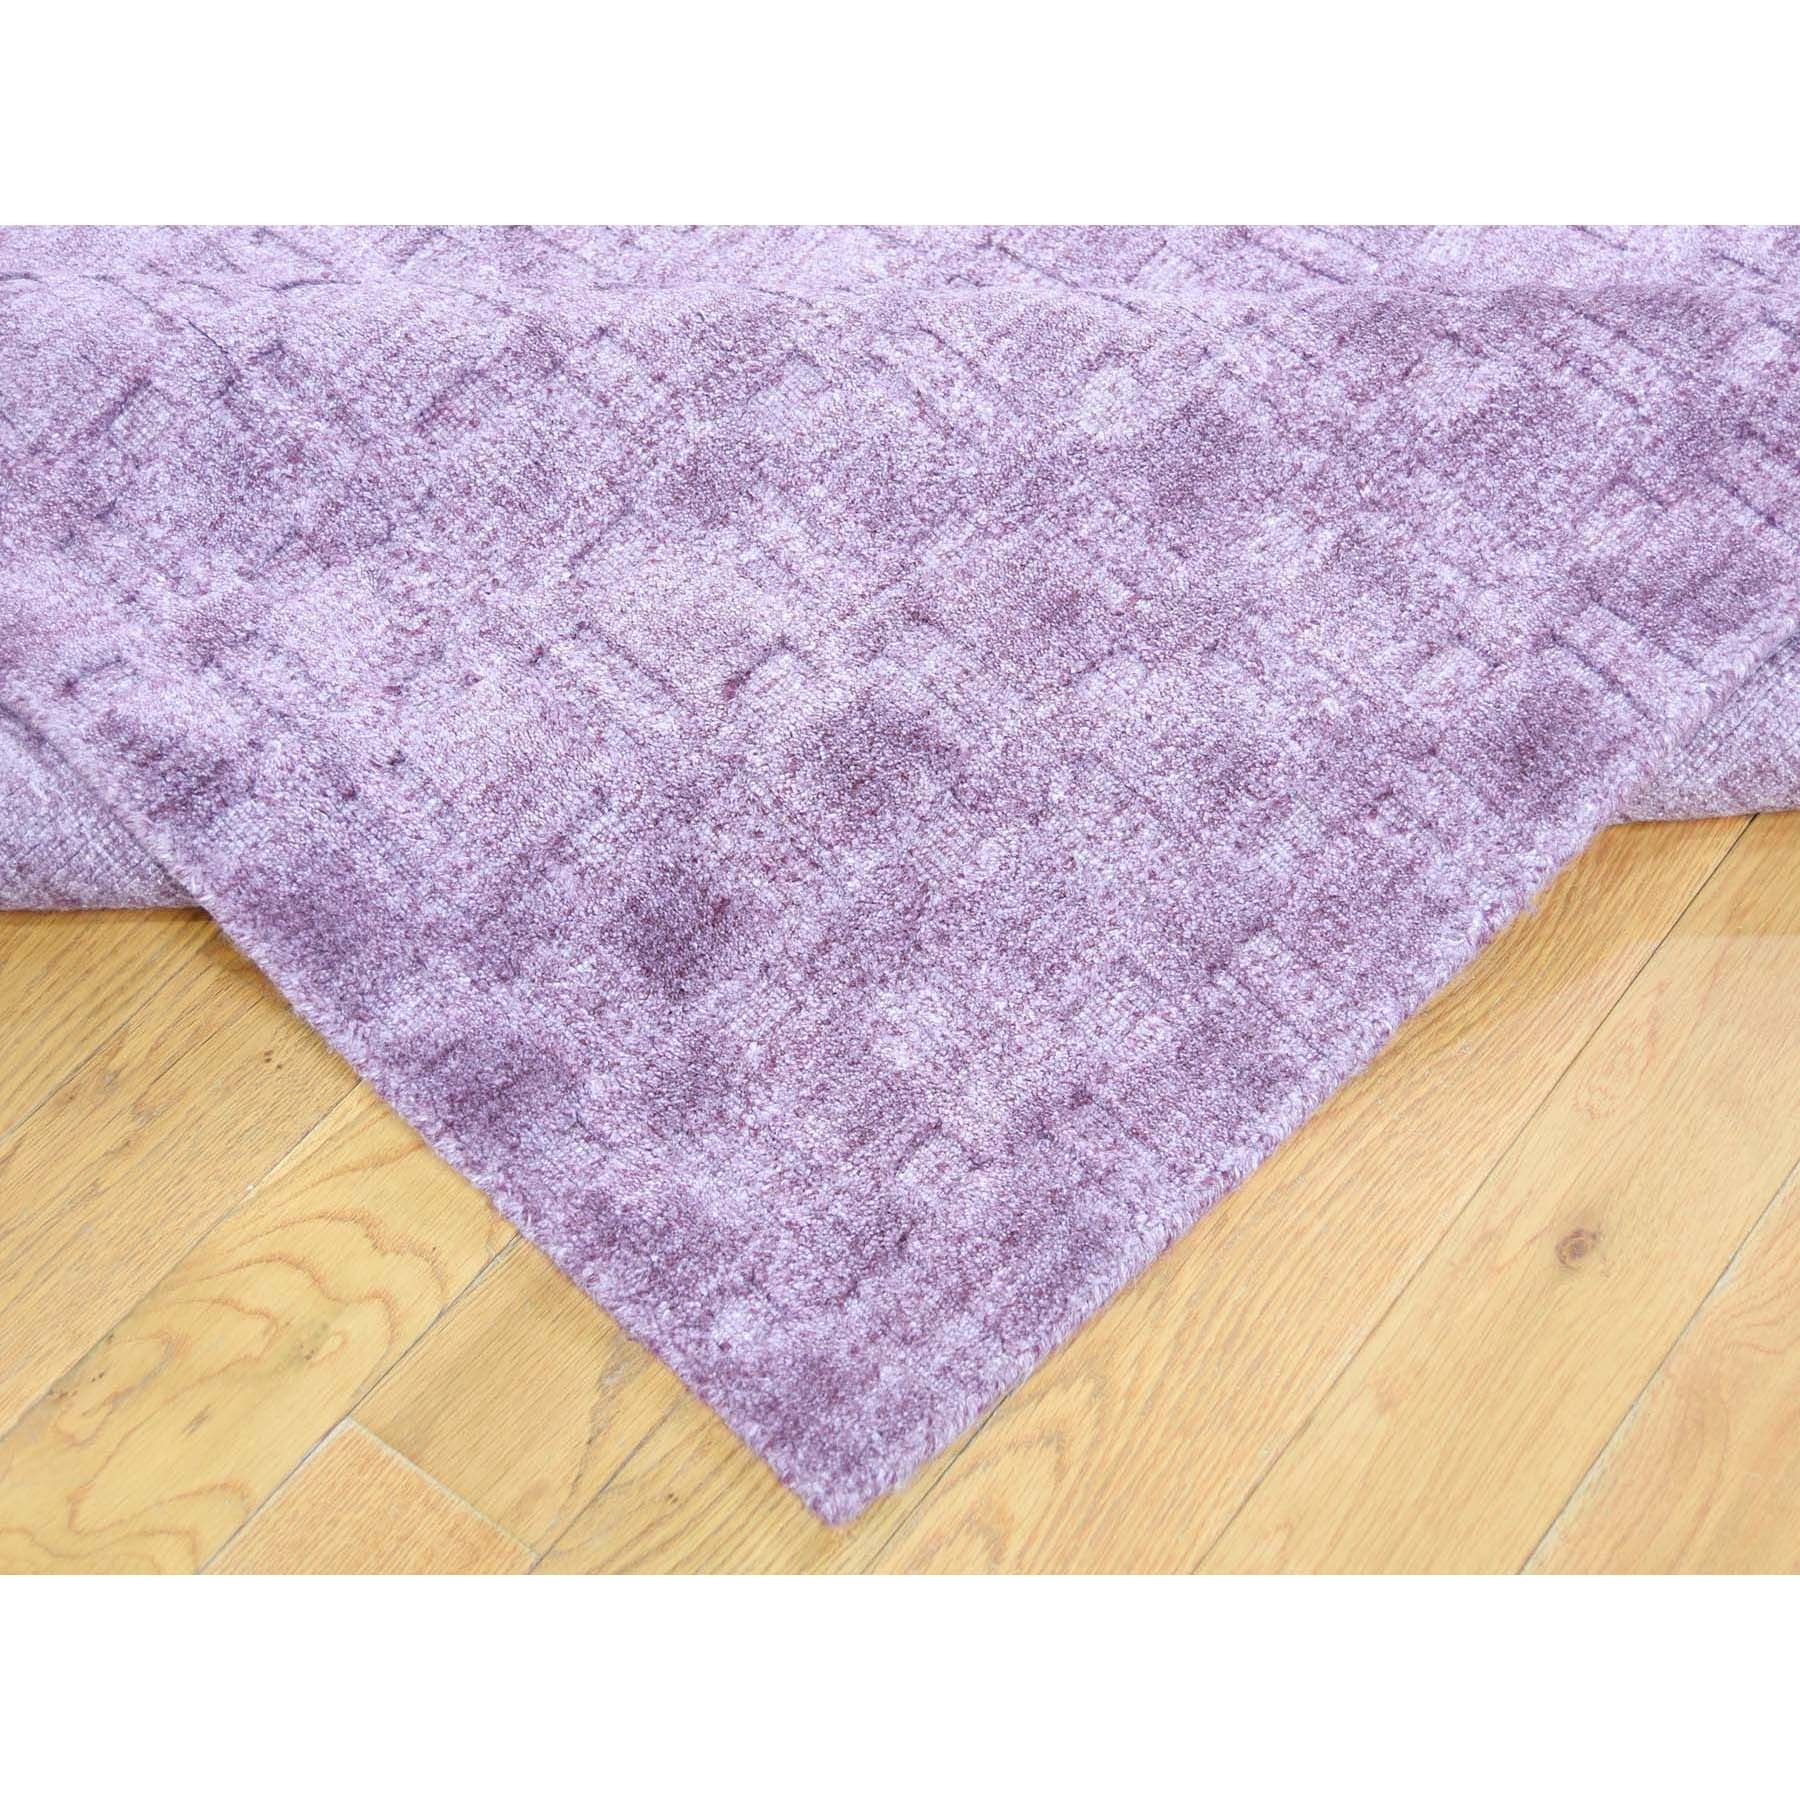 9-1-x12- Pure Wool Hand-Loomed Tone on Tone Ultra Violet Oriental Rug